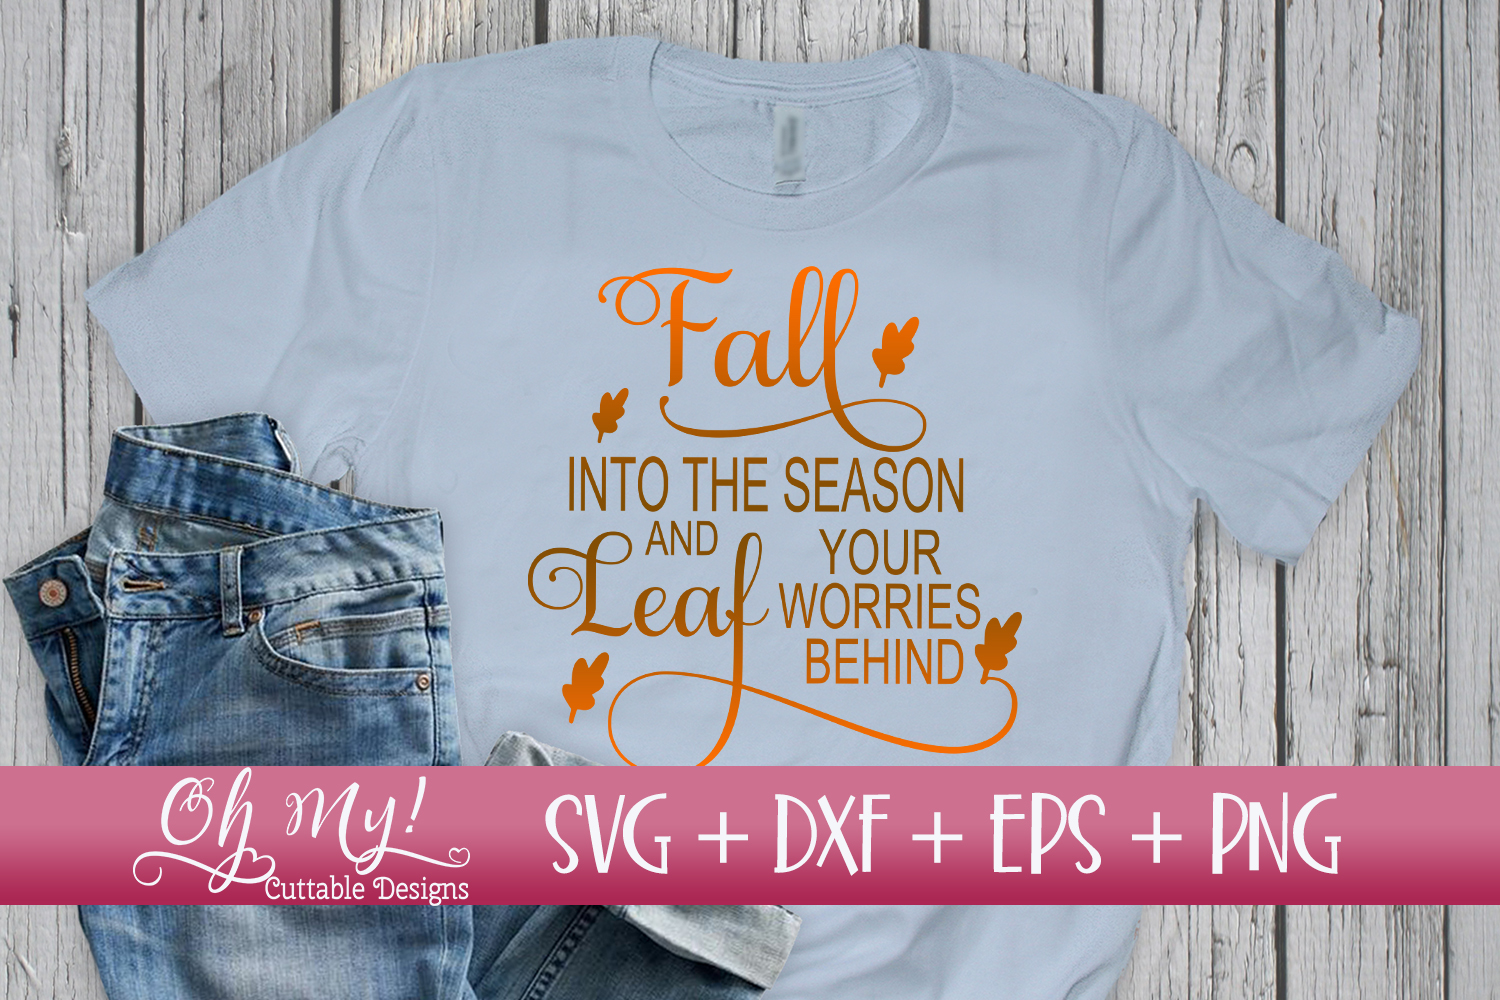 Fall Into The Season And Leaf Your Worries Behind - SVG DXF example image 2